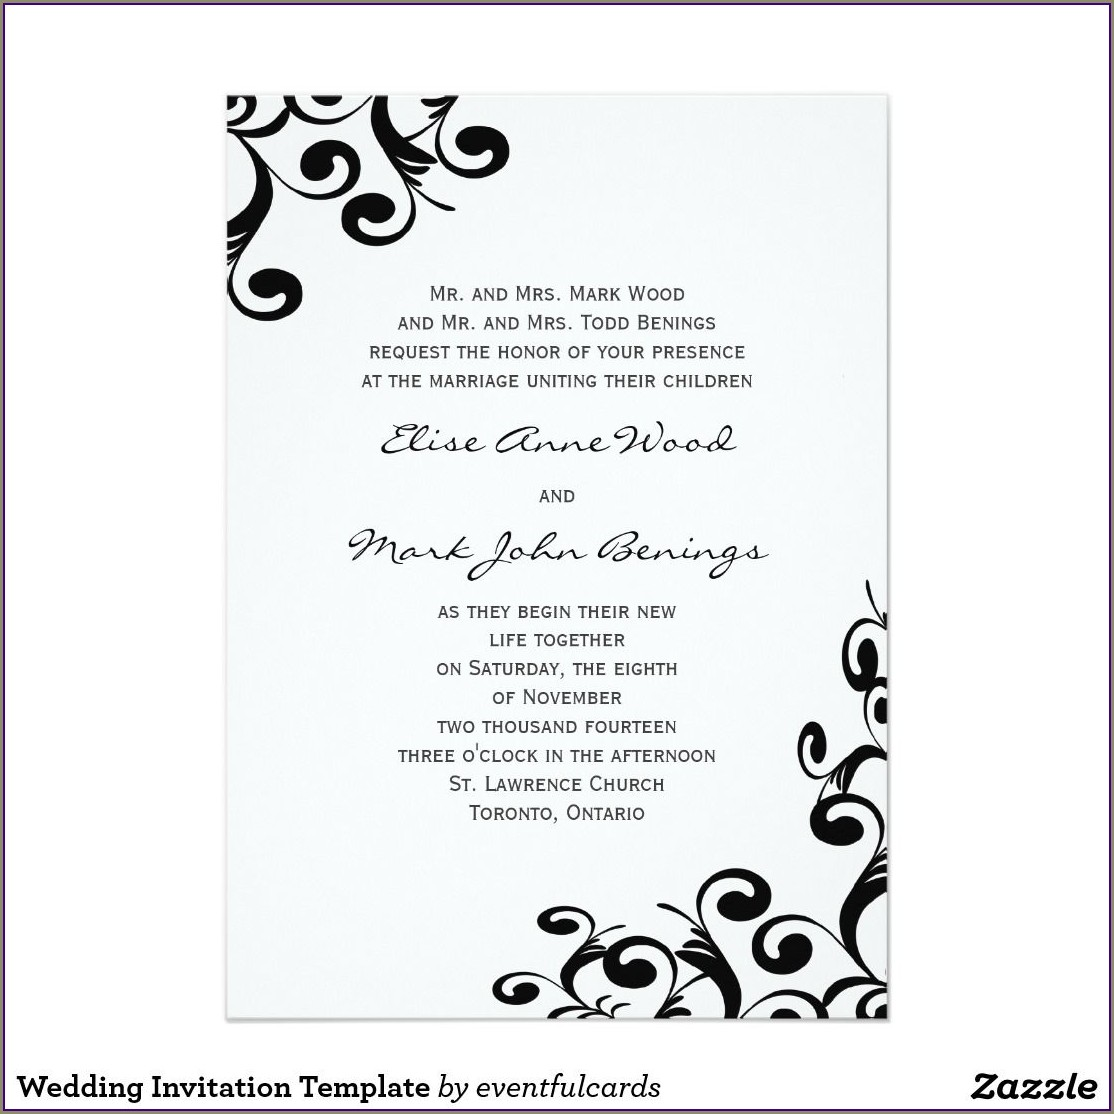 Free Wedding Invitation Samples Zazzle